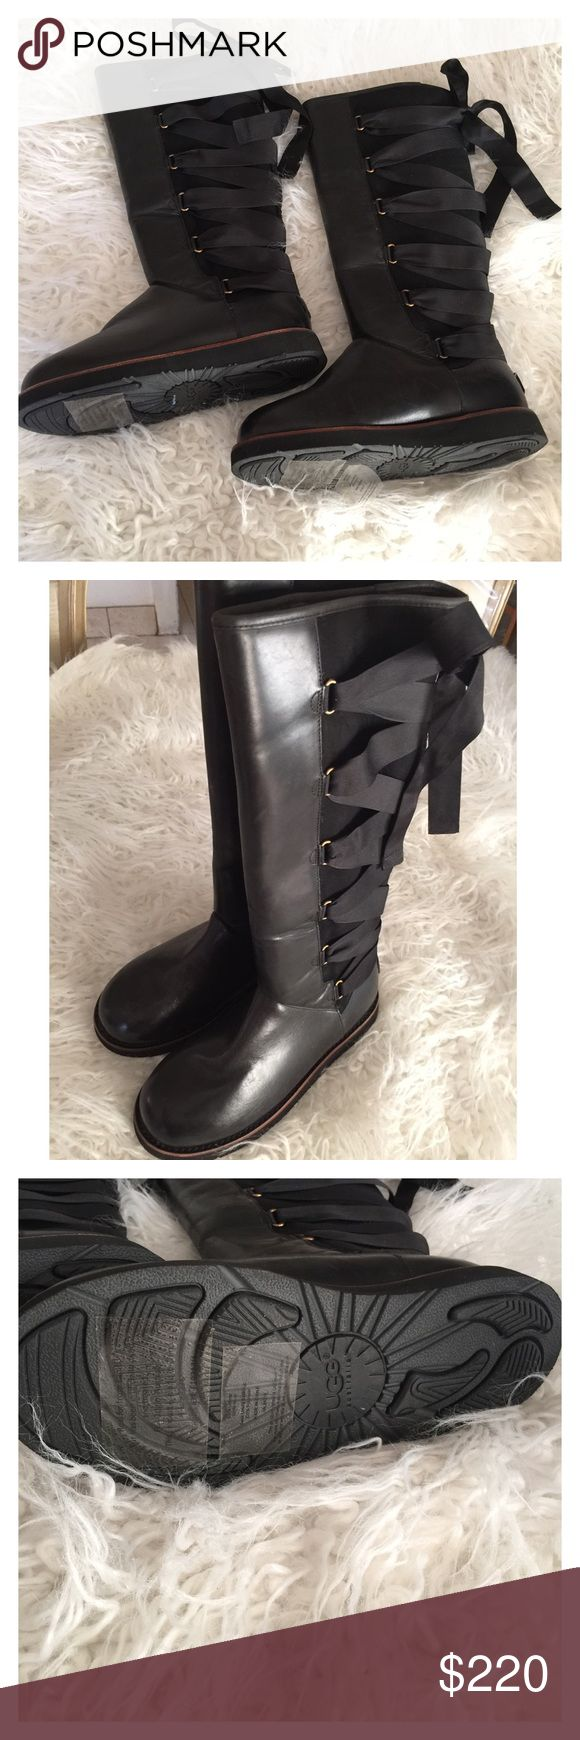 Hunter Boots These are fabulous, leather and sheep skin with a chic ribbon on the back. Must have this season. No box Hunter Boots Shoes Lace Up Boots